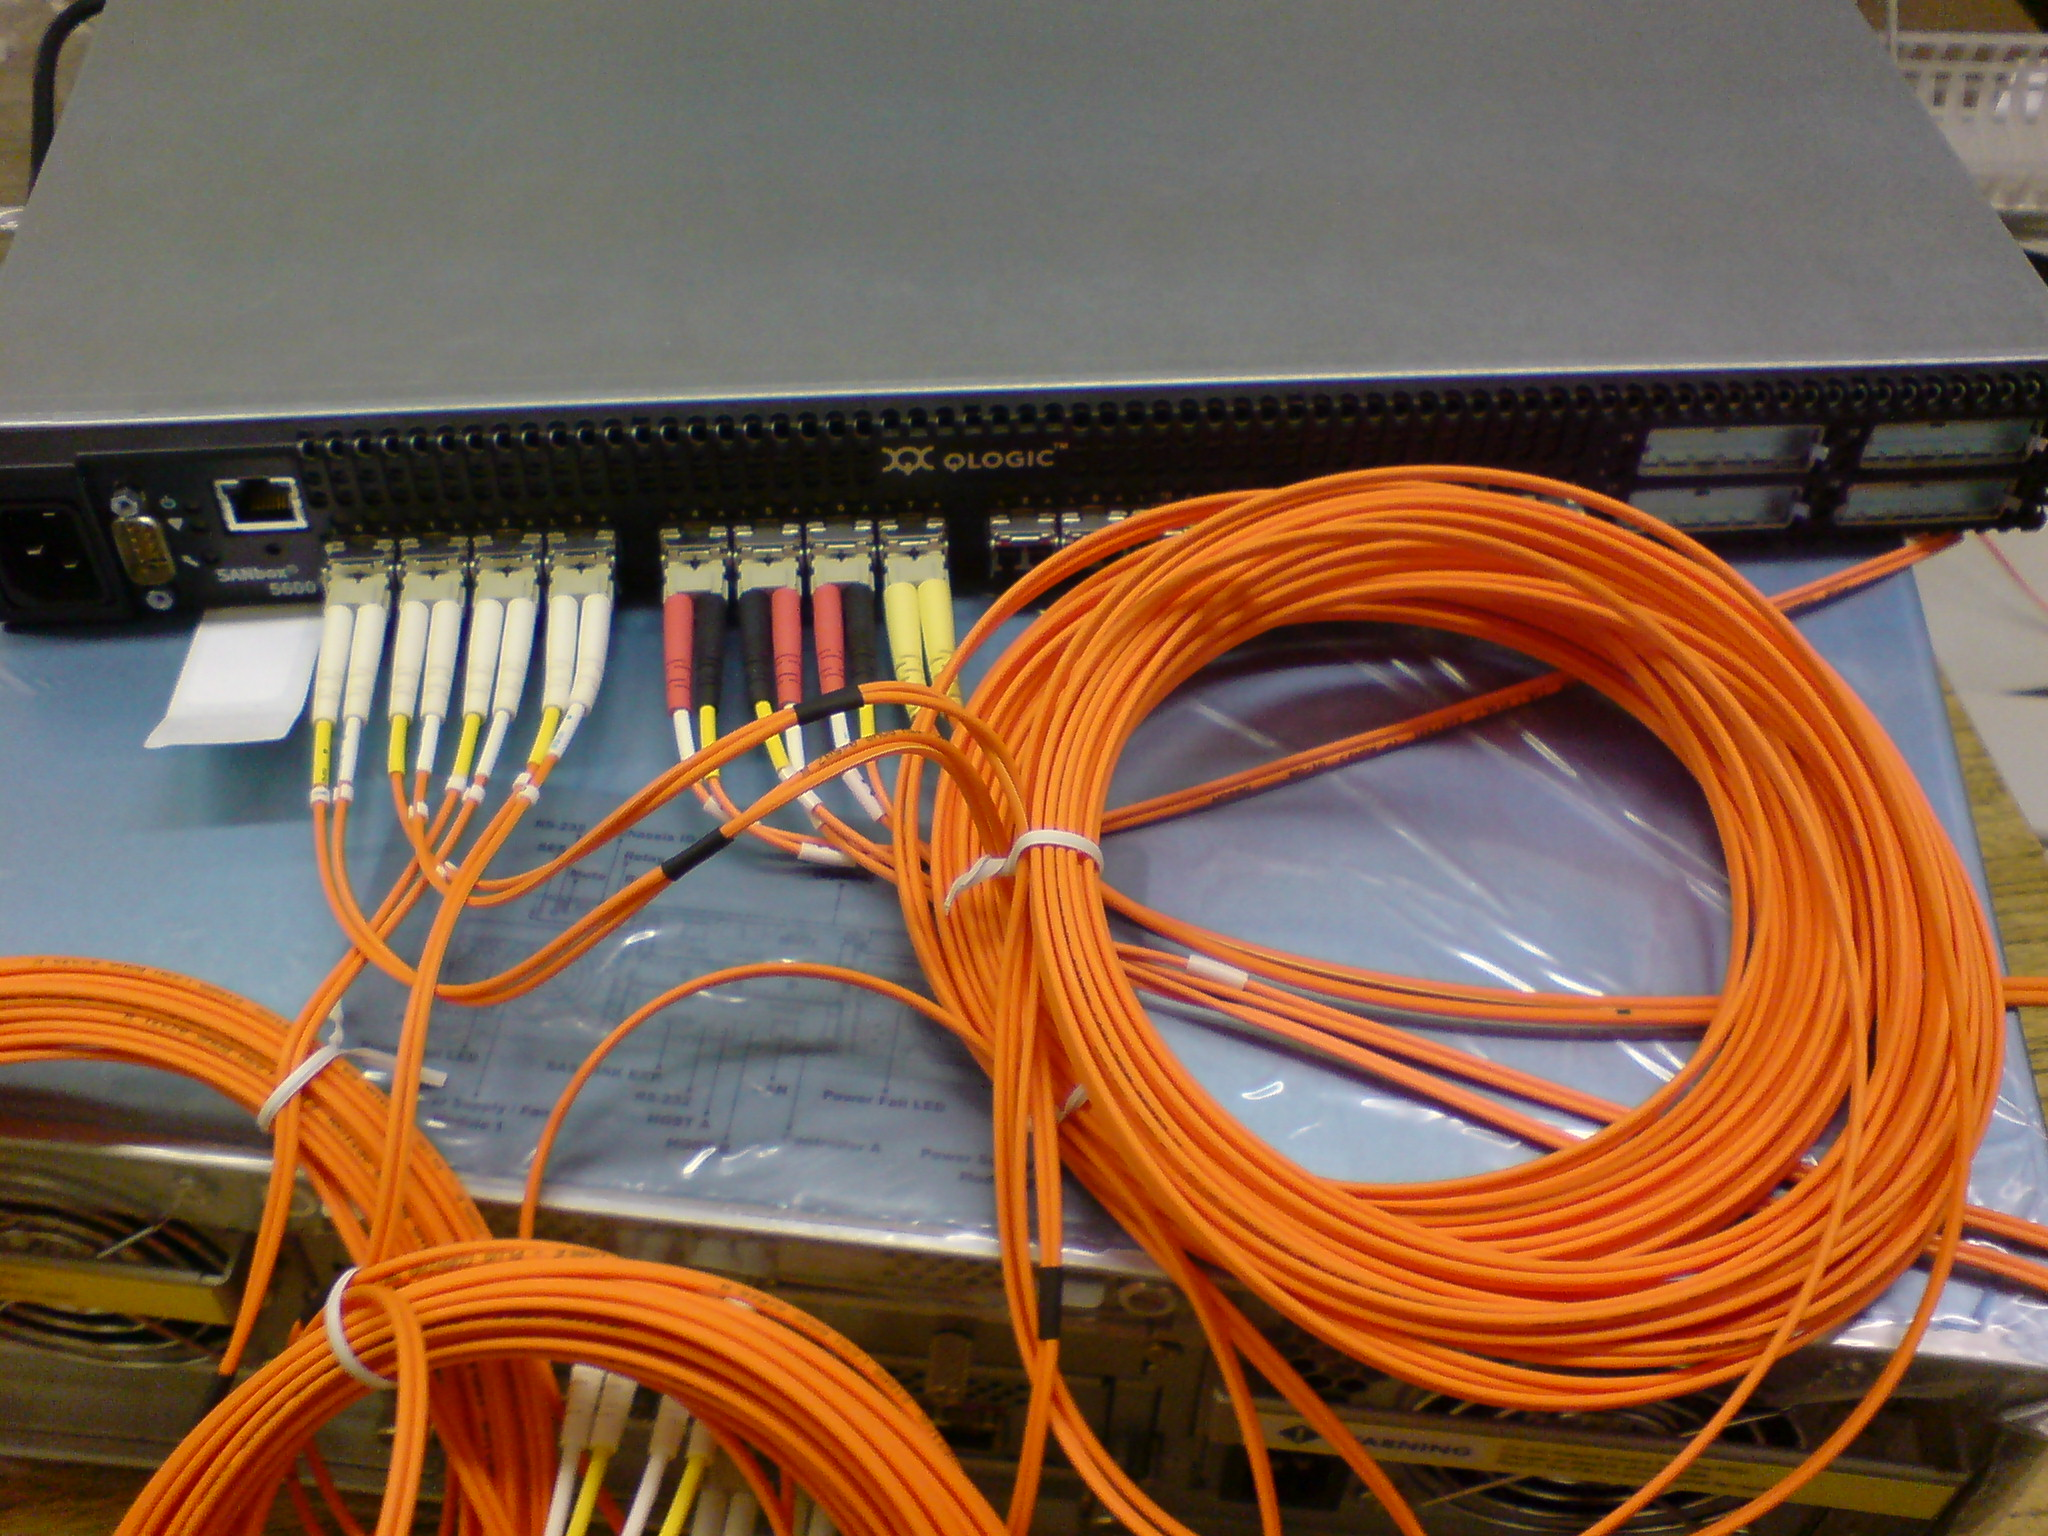 SAN-switch Qlogic with optical Fibre Channel connectors installed.